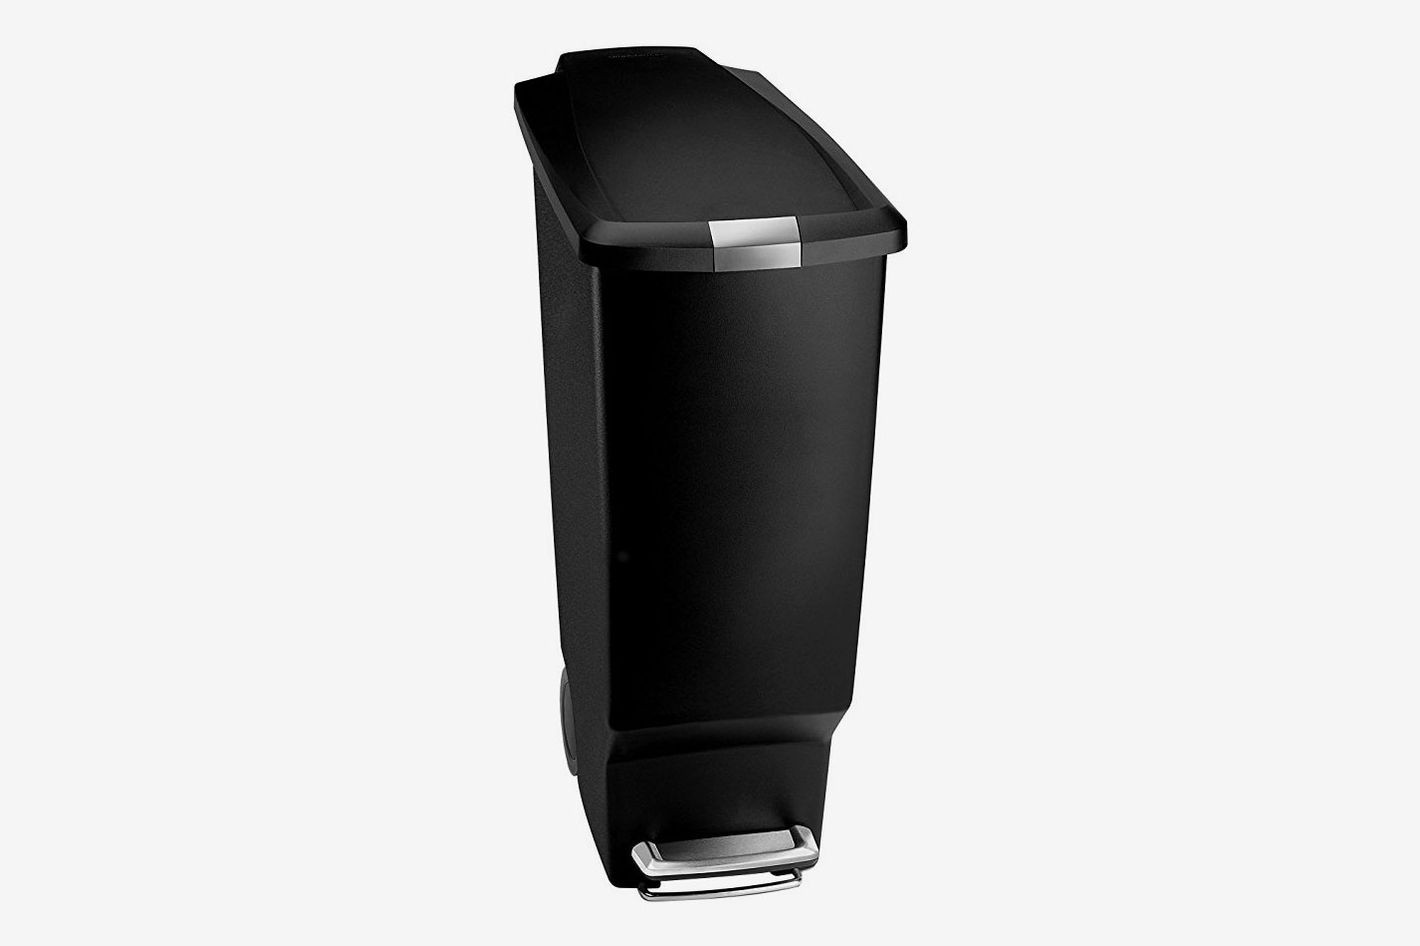 Best Step Pedal Kitchen Trash Can